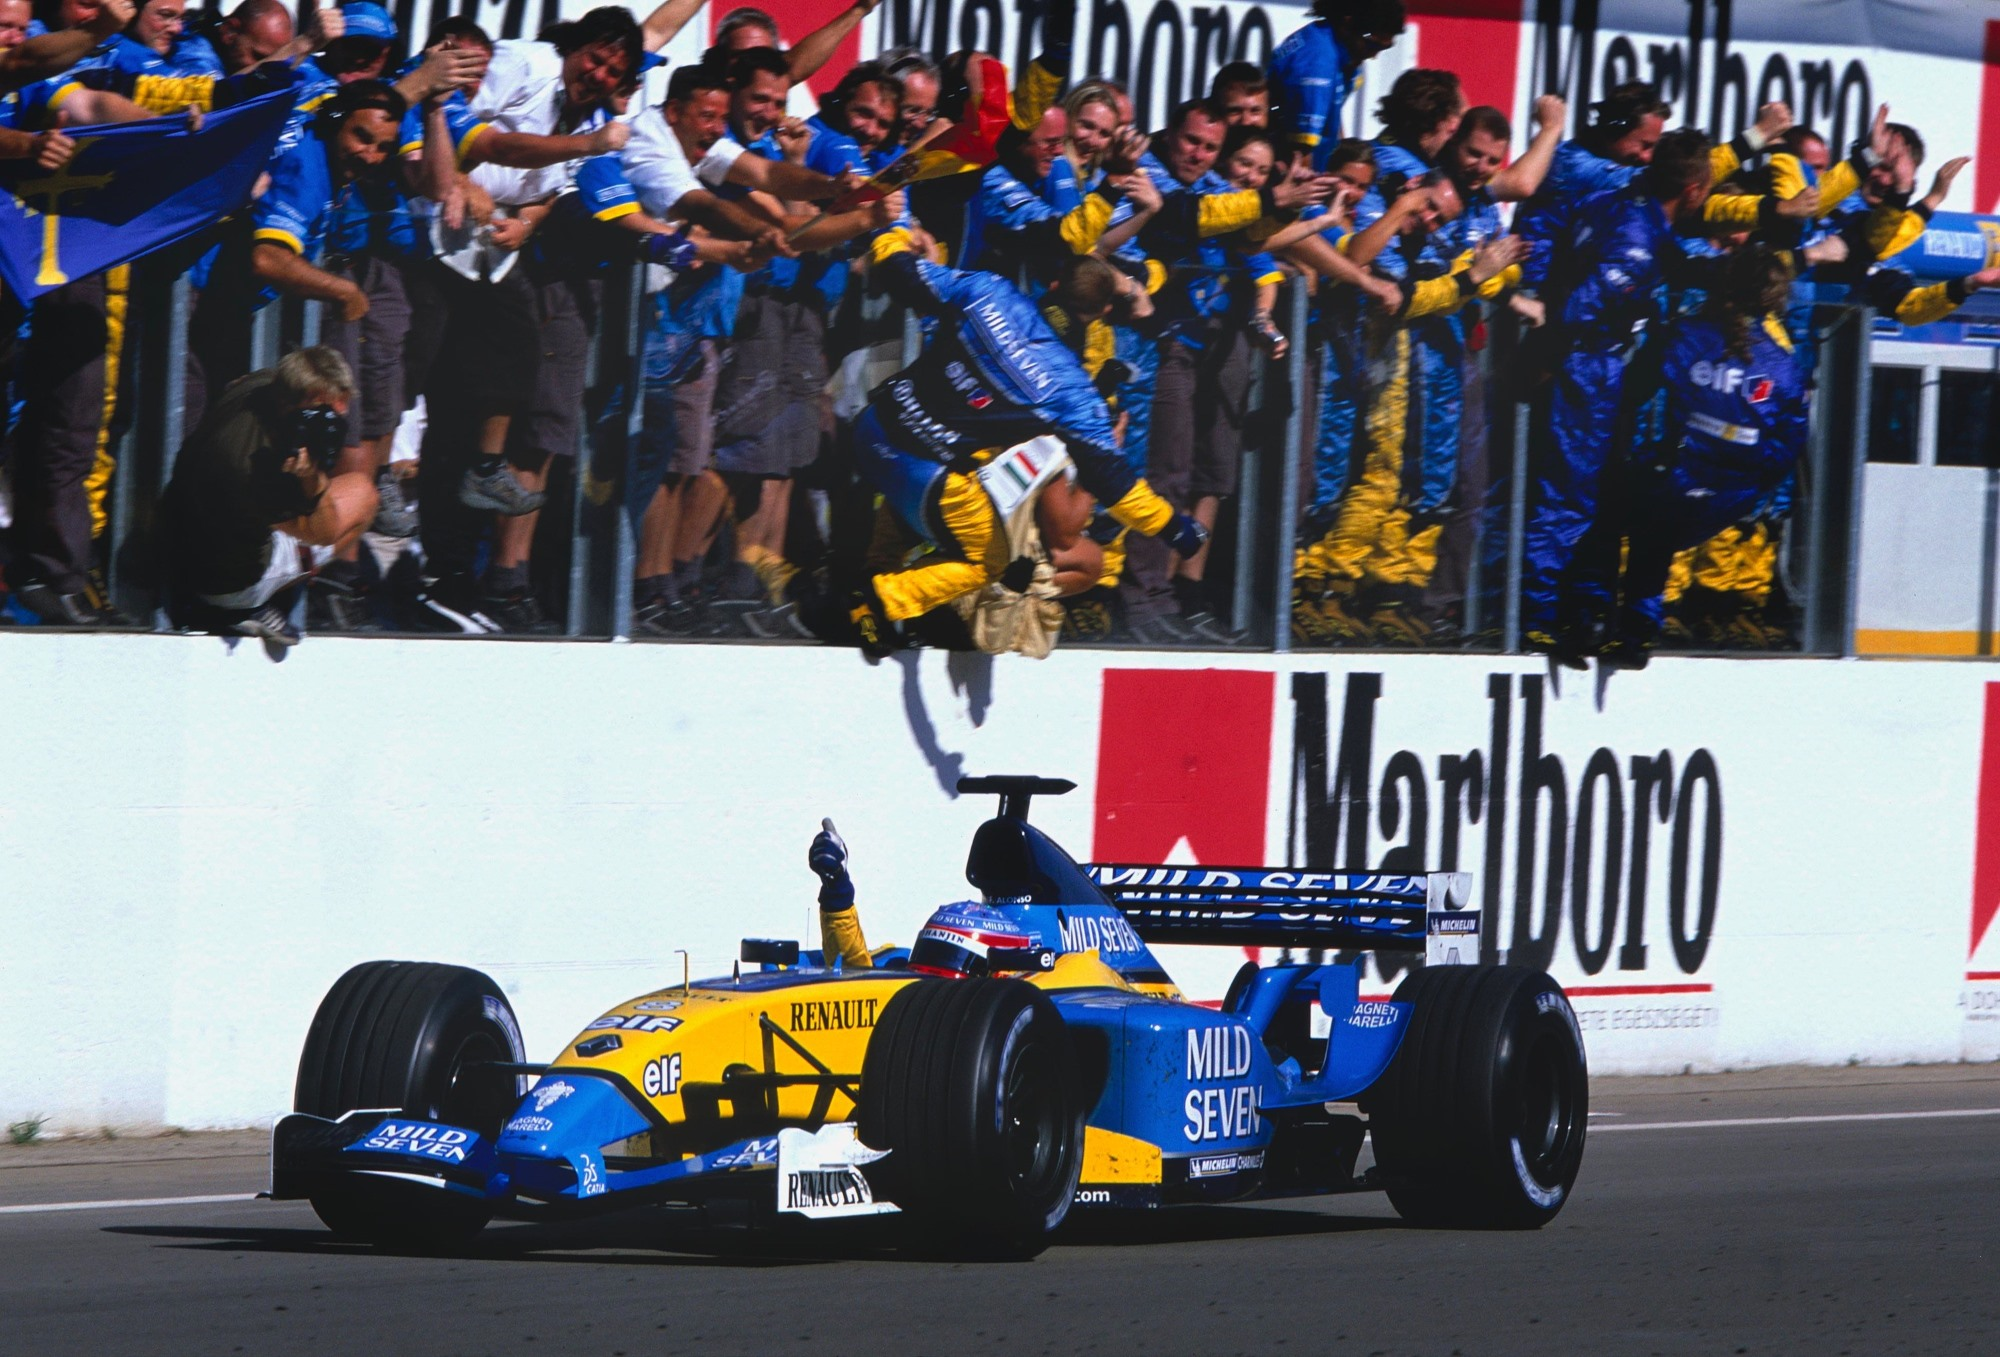 fernando-alonso-renault-r23-first-win-hungary-gp-hungaroring-f1-2003-foto-f1france